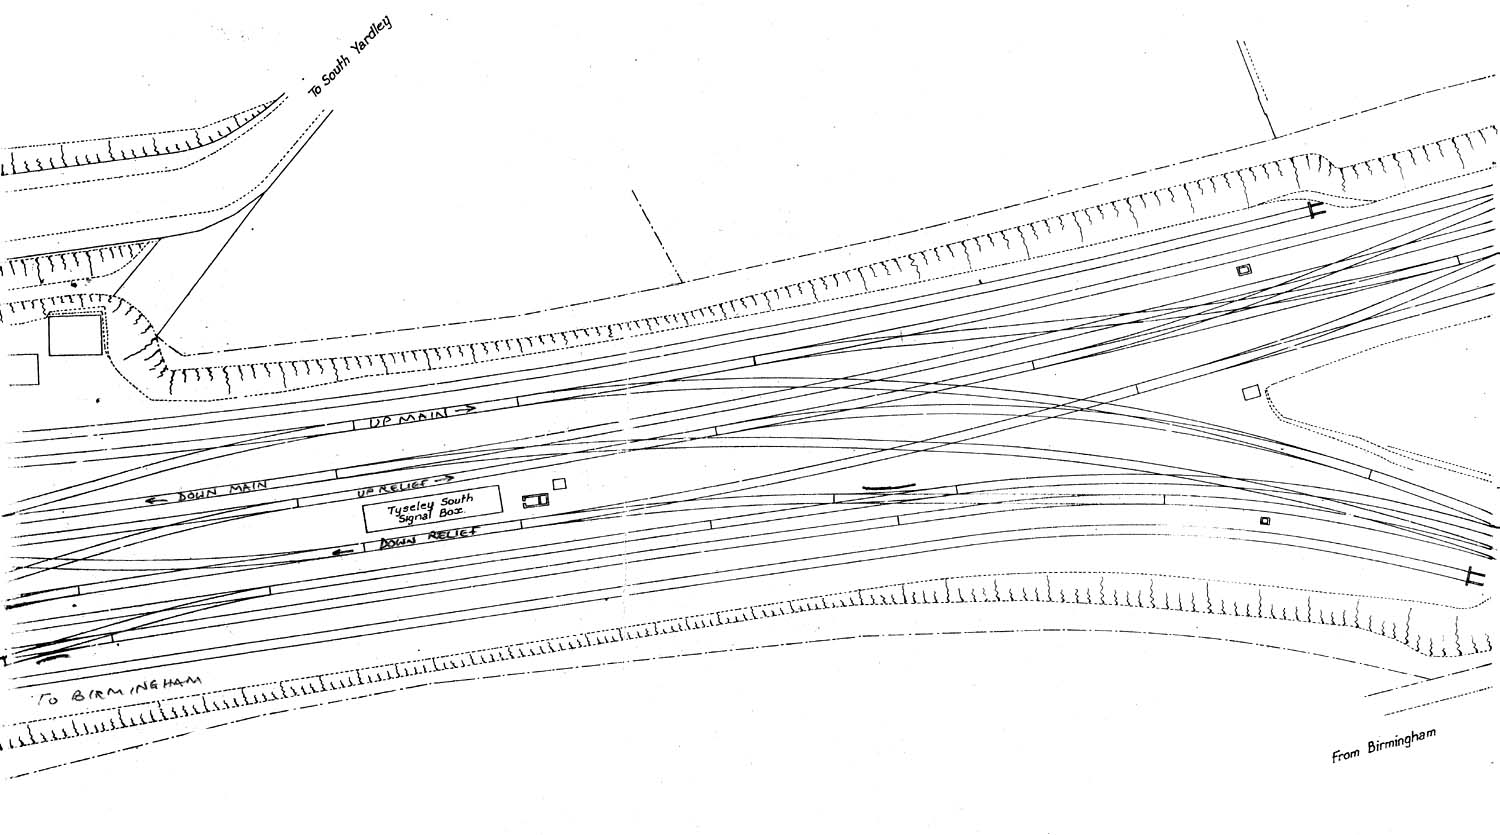 tyseley shed  plan of the track layout at the junction